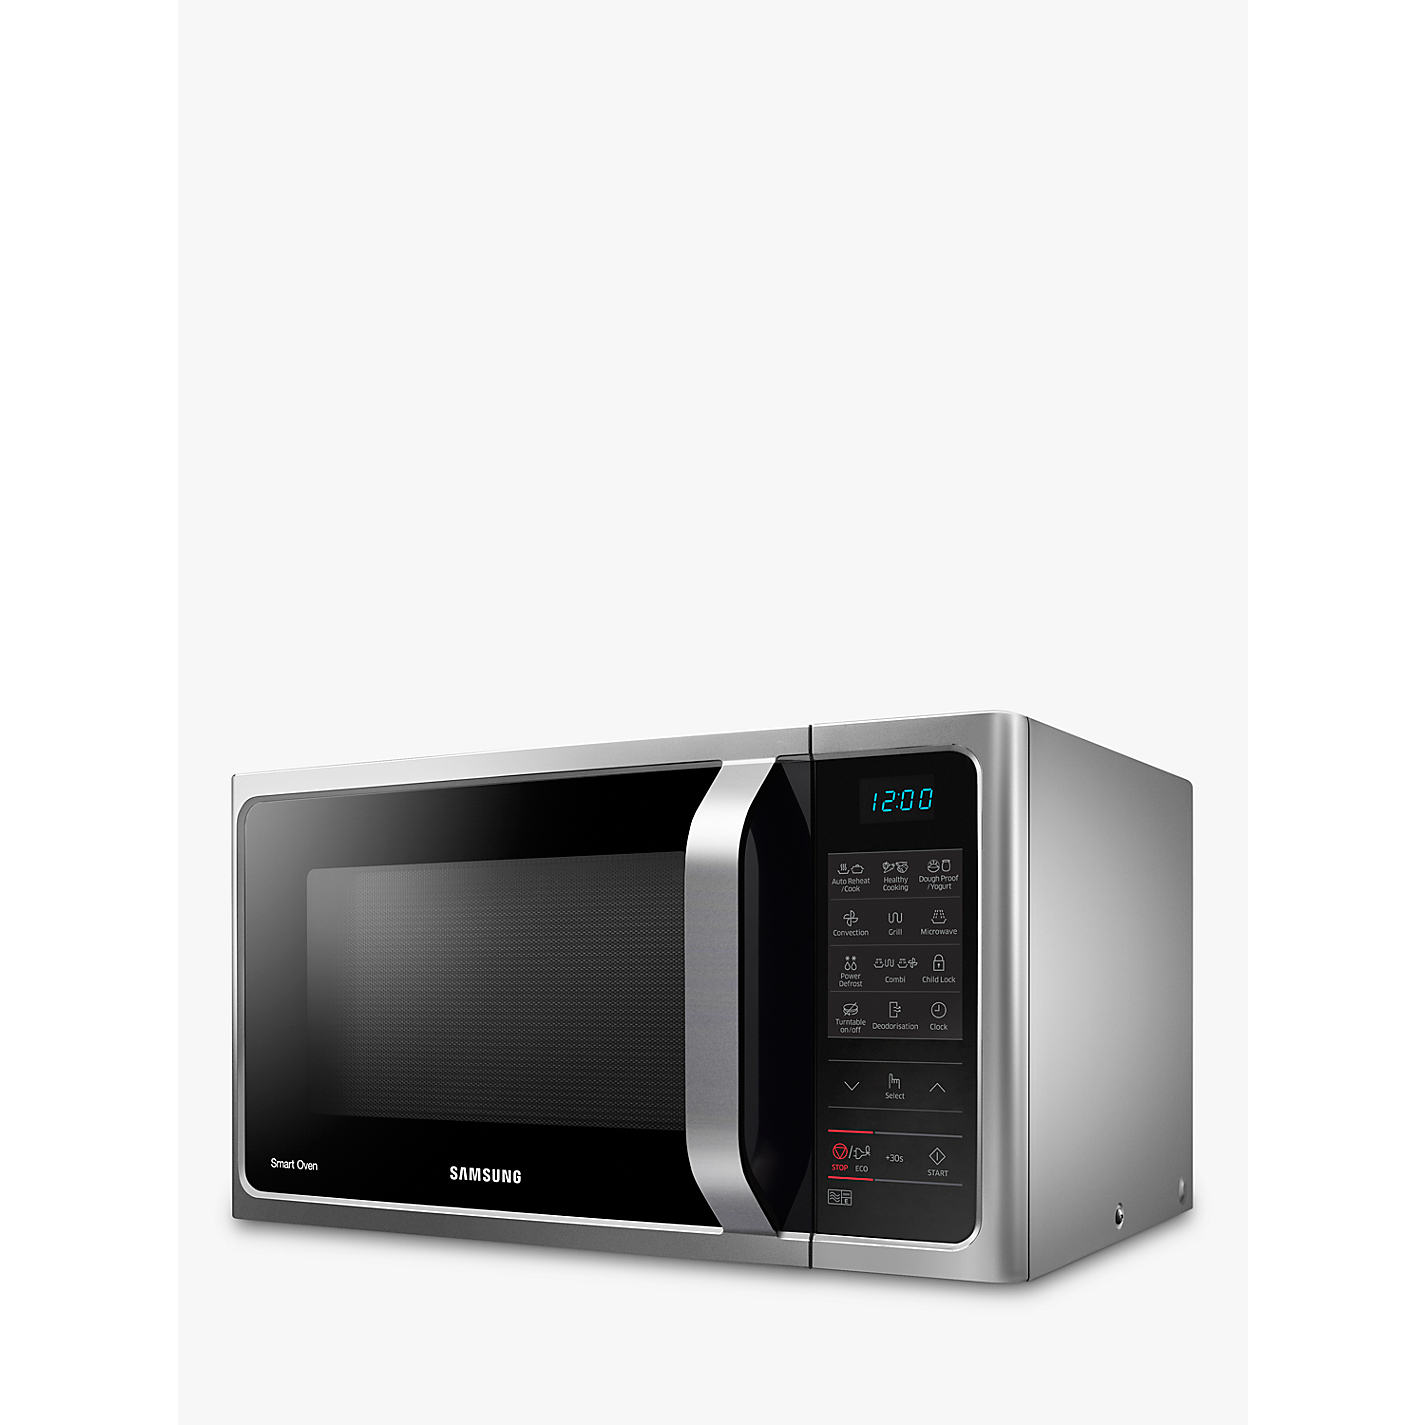 Samsung Mc28h5013as Freestanding Microwave Oven Silver John Smart